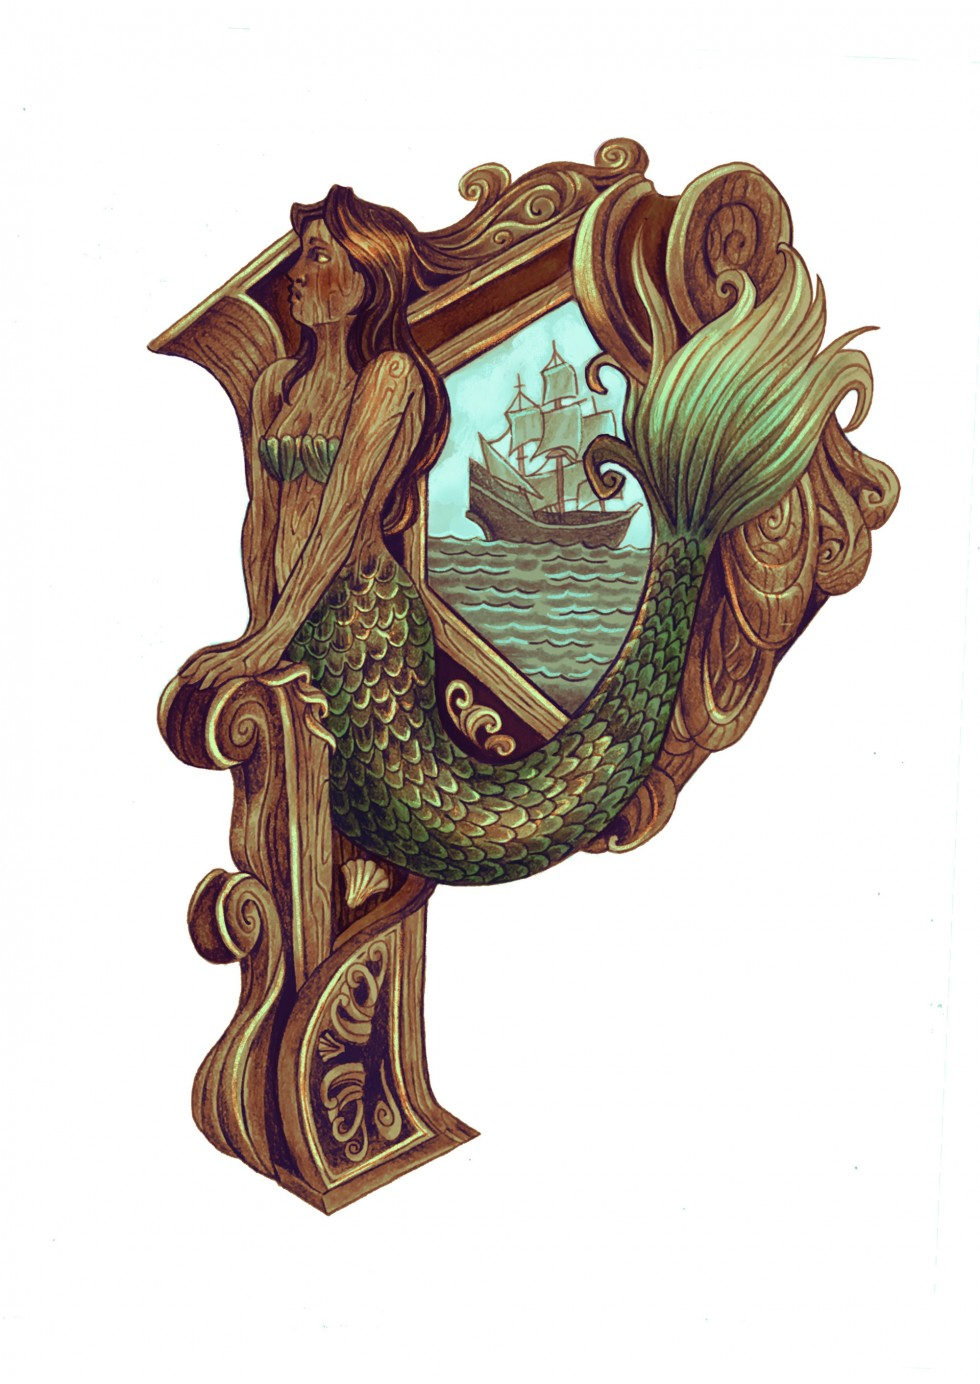 """This image is a drop cap letter """"P"""" the letter its self is designed to resemble a gothic lettering style if it were a three dimension wood carving on a ship. The stem of the letter is a carved mermaid whose tail sweeps around the bottom loop of the """"P"""" in"""